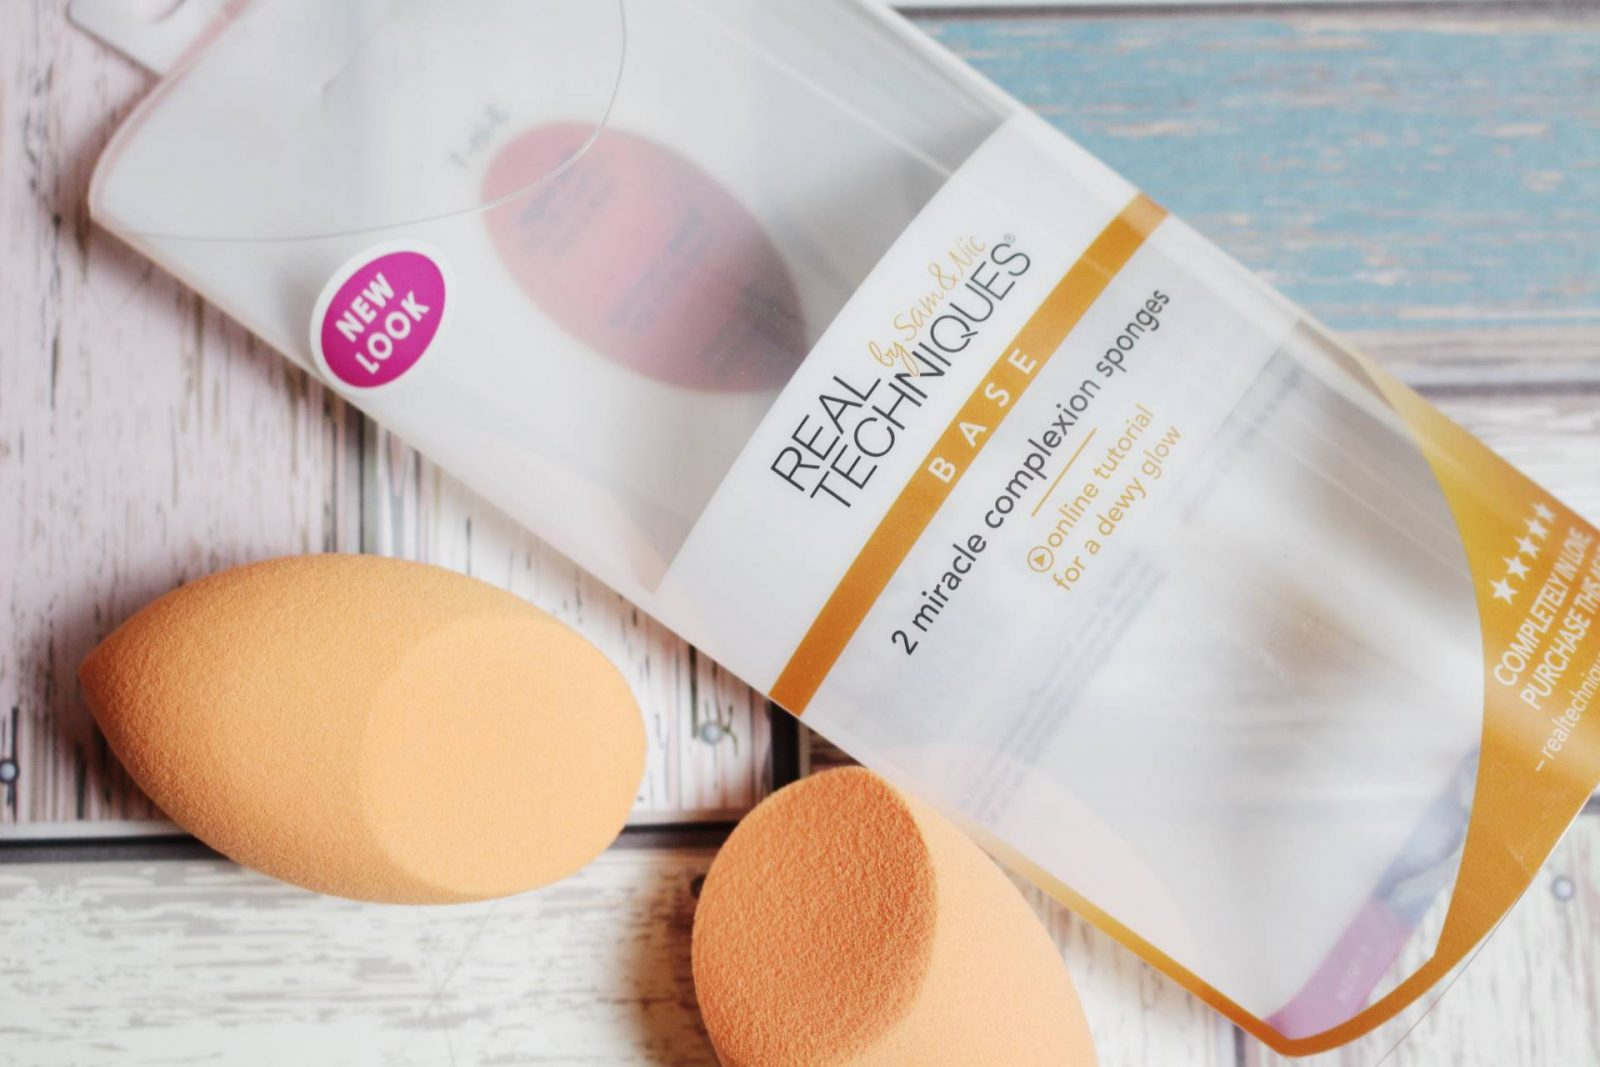 Real Techniques Miracle Complexion Sponge Review